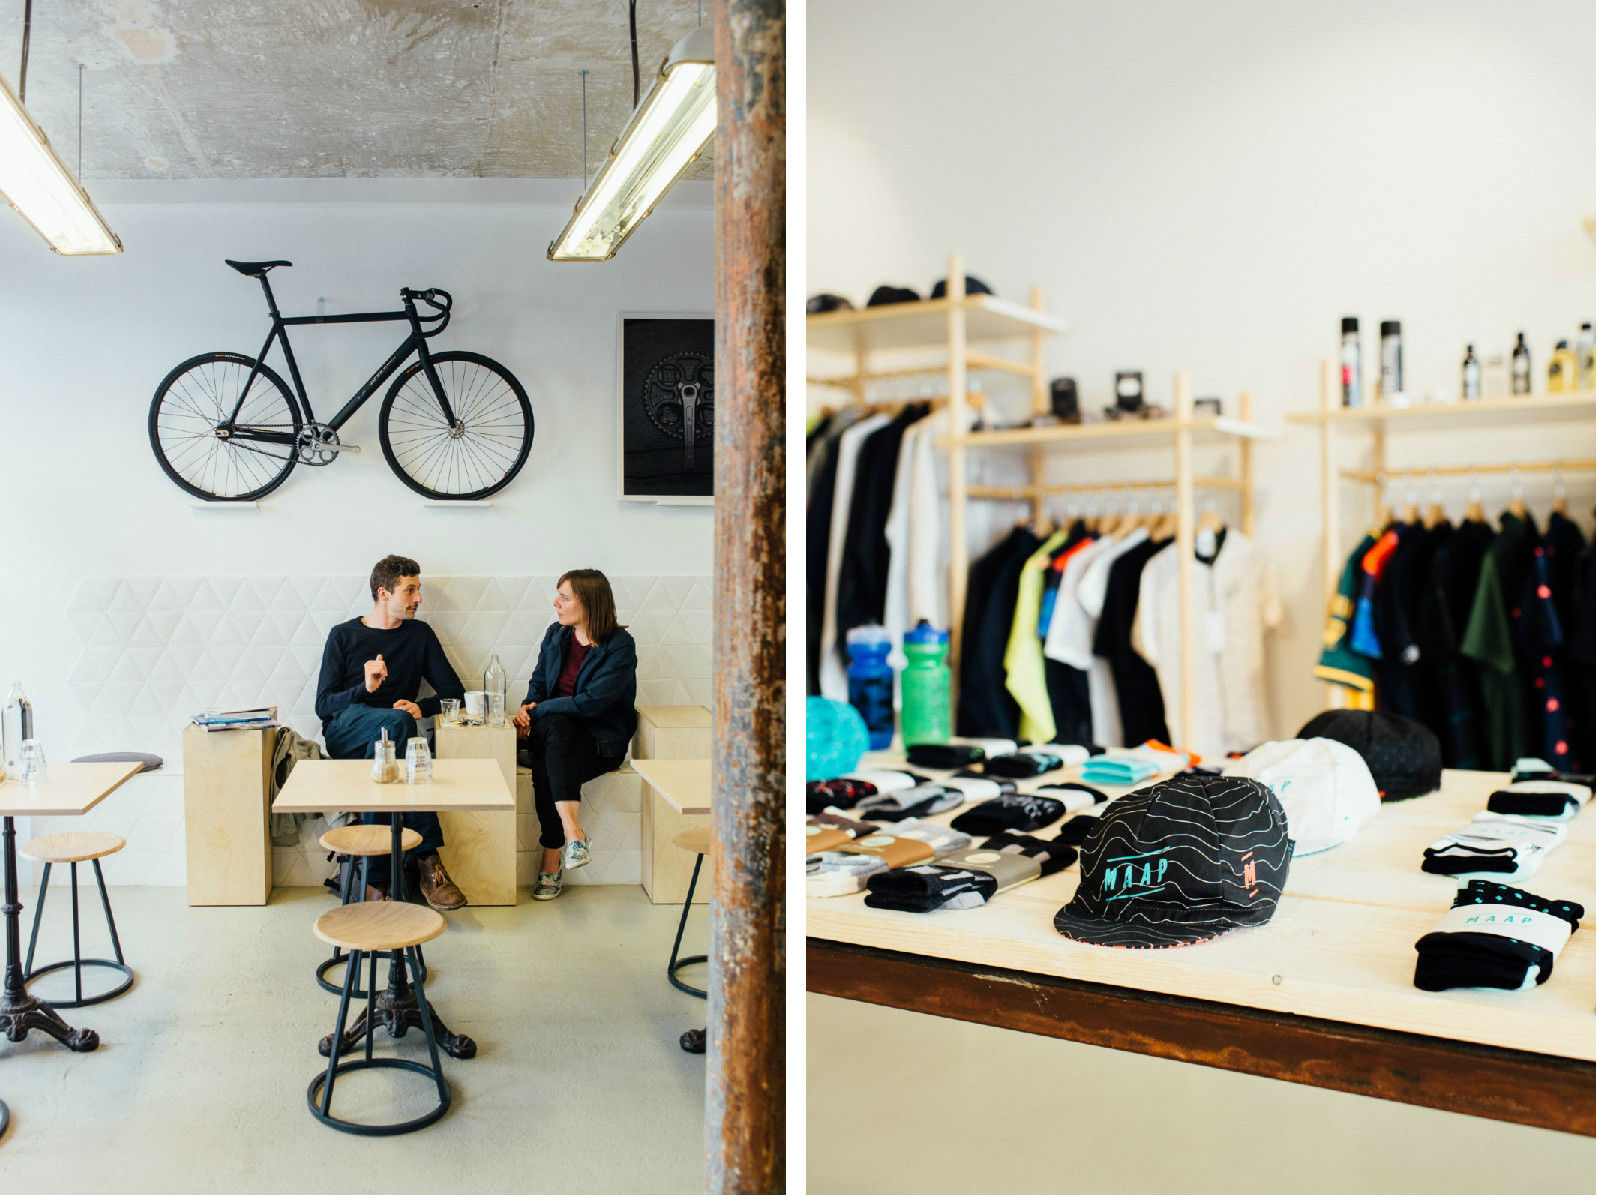 HiP Paris blog. Inside Steel.  Cafe side vs store side.